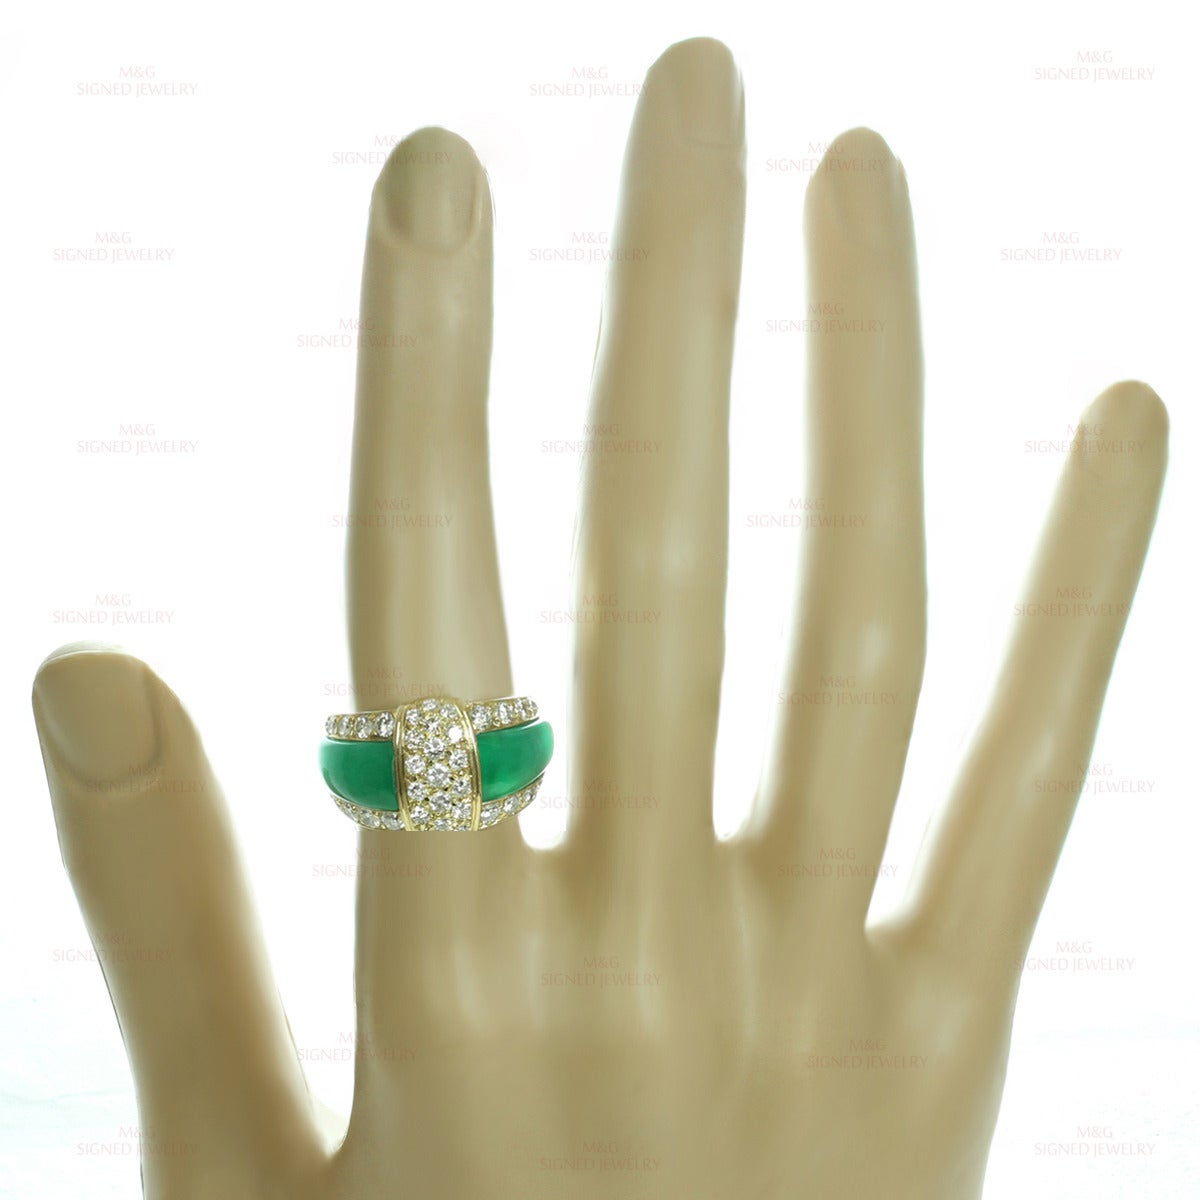 Van Cleef & Arpels Green Chrysoprase Diamond Yellow Gold Ring For Sale 1